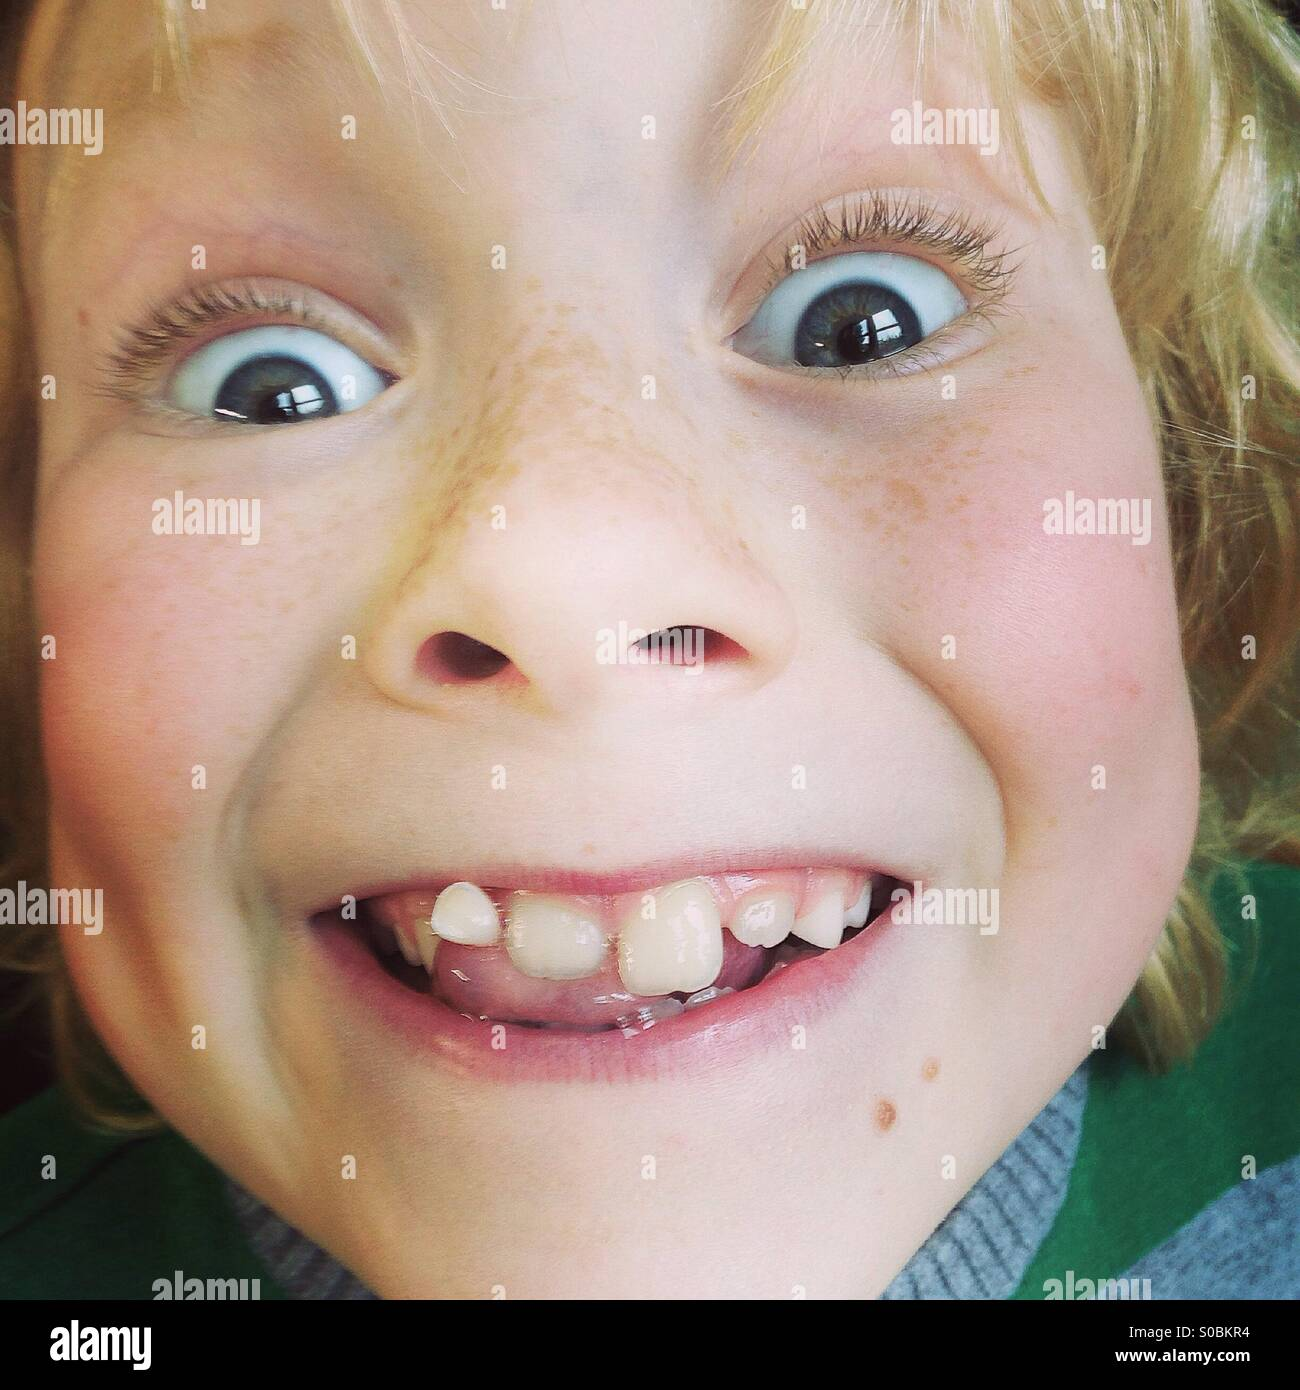 Wobbly Tooth - Stock Image